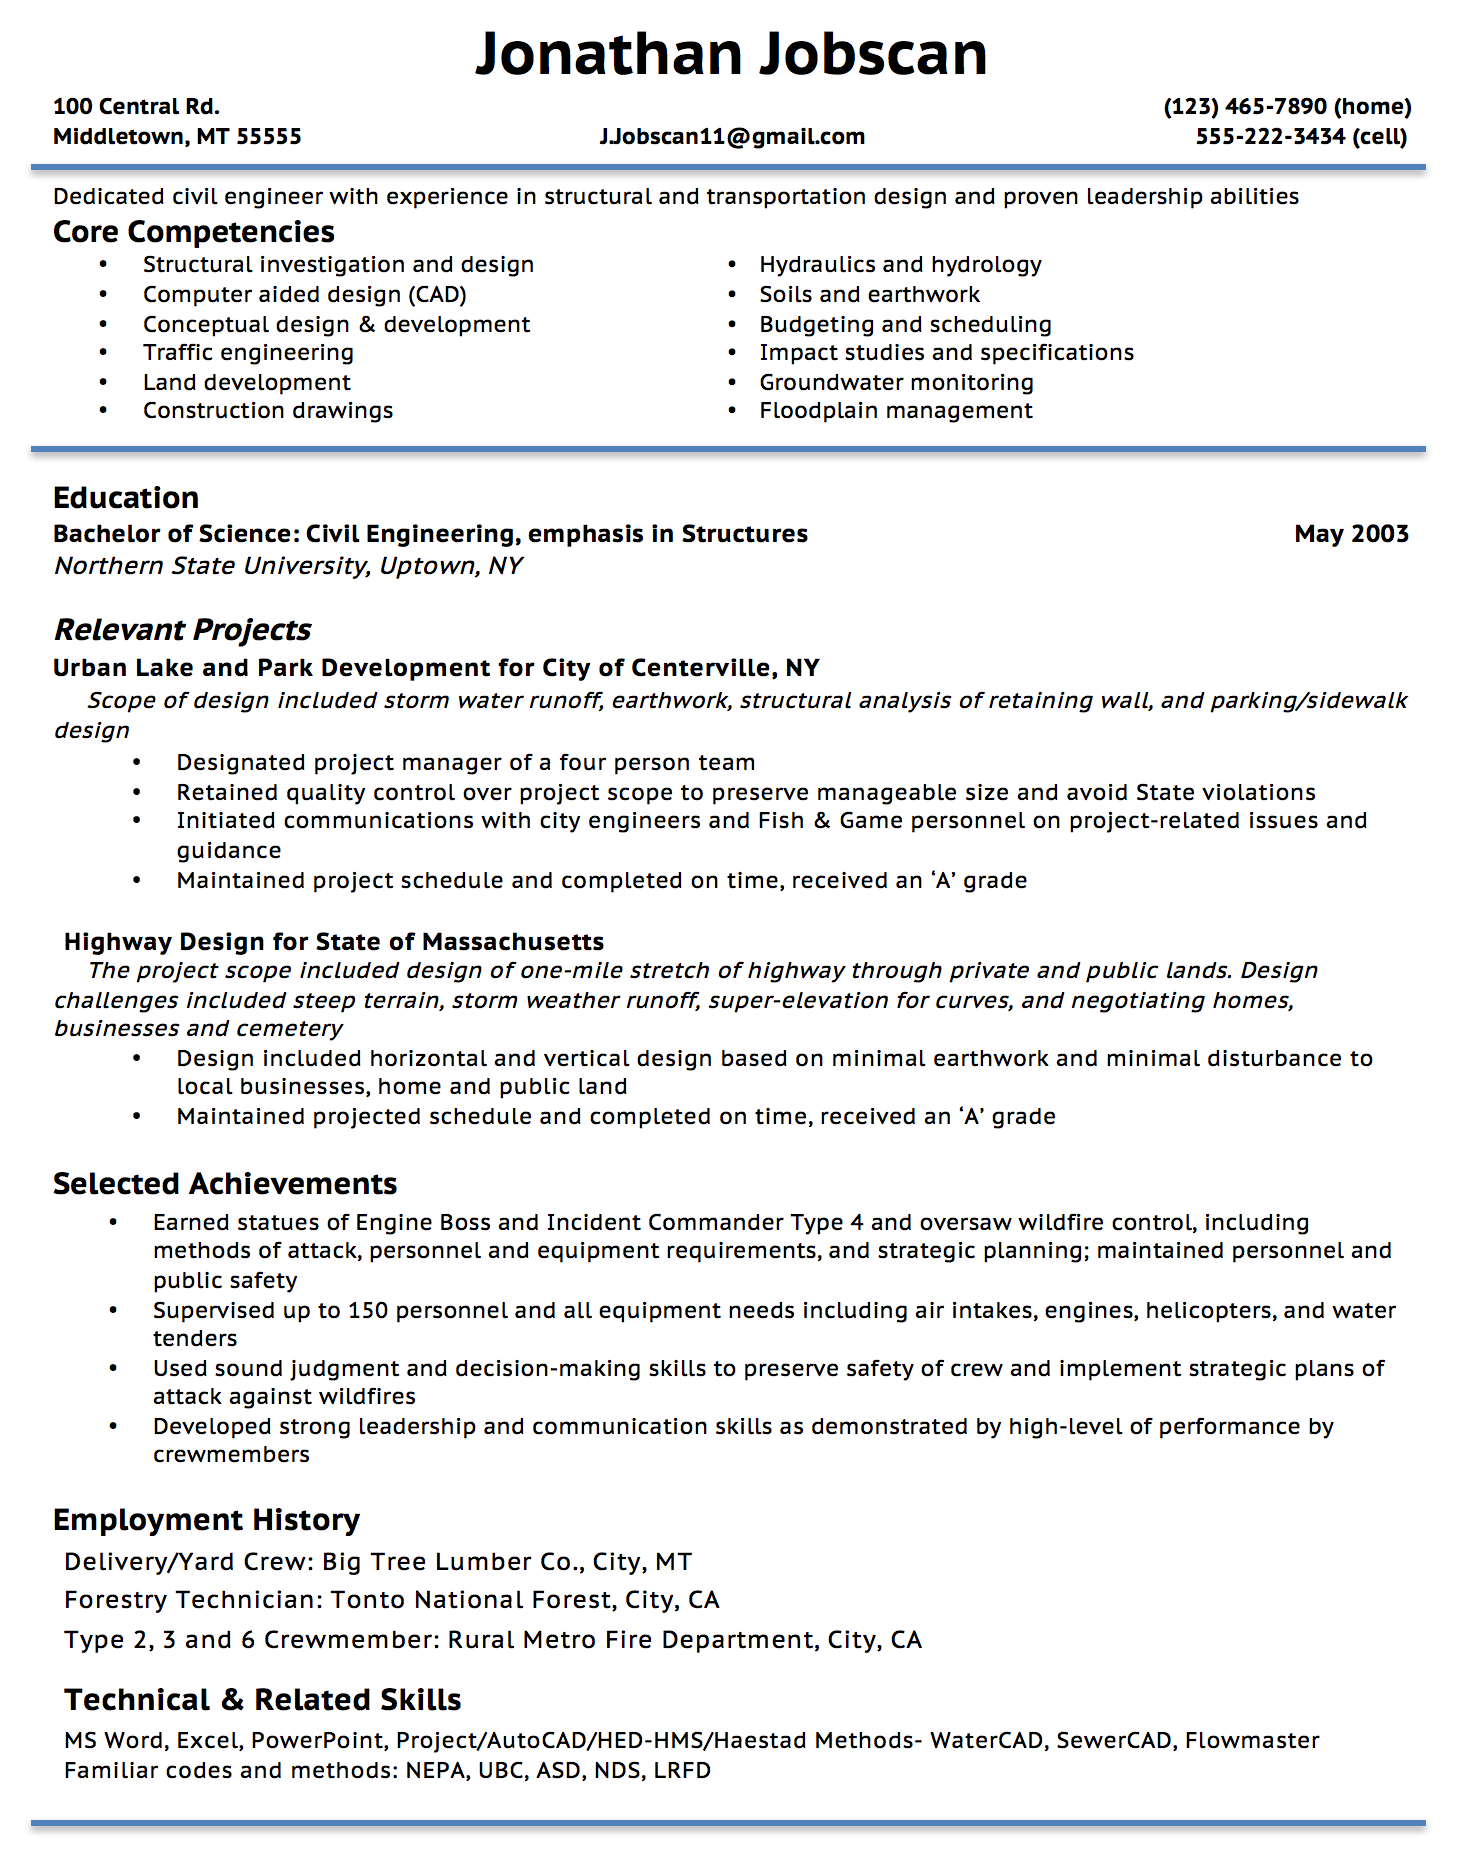 Opposenewapstandardsus  Wonderful Resume Writing Guide  Jobscan With Entrancing Example Of A Functional Resume Format With Charming How To Write An Acting Resume Also Medical Interpreter Resume In Addition Cashier Job Duties For Resume And Great Looking Resumes As Well As Google Resume Examples Additionally Barney Stinson Resume From Jobscanco With Opposenewapstandardsus  Entrancing Resume Writing Guide  Jobscan With Charming Example Of A Functional Resume Format And Wonderful How To Write An Acting Resume Also Medical Interpreter Resume In Addition Cashier Job Duties For Resume From Jobscanco